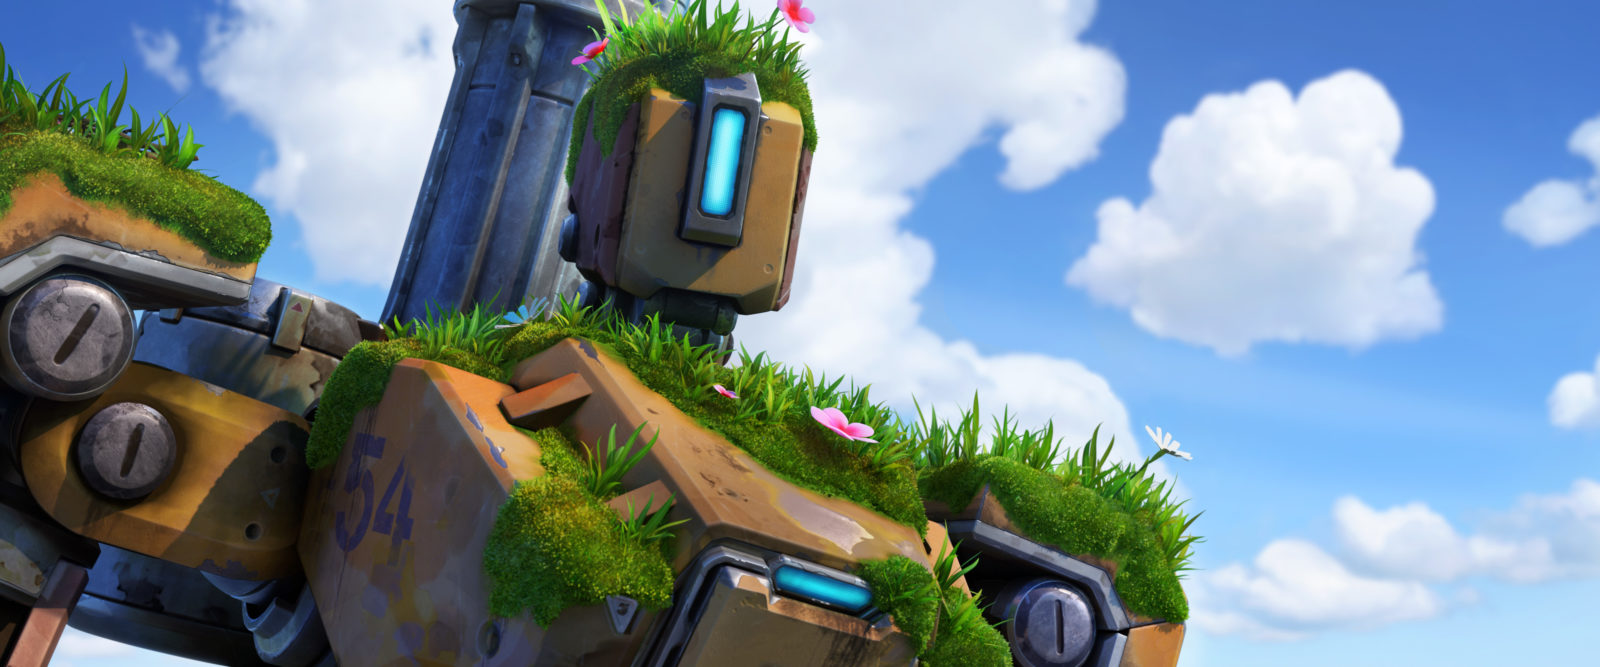 Overwatch_Bastion